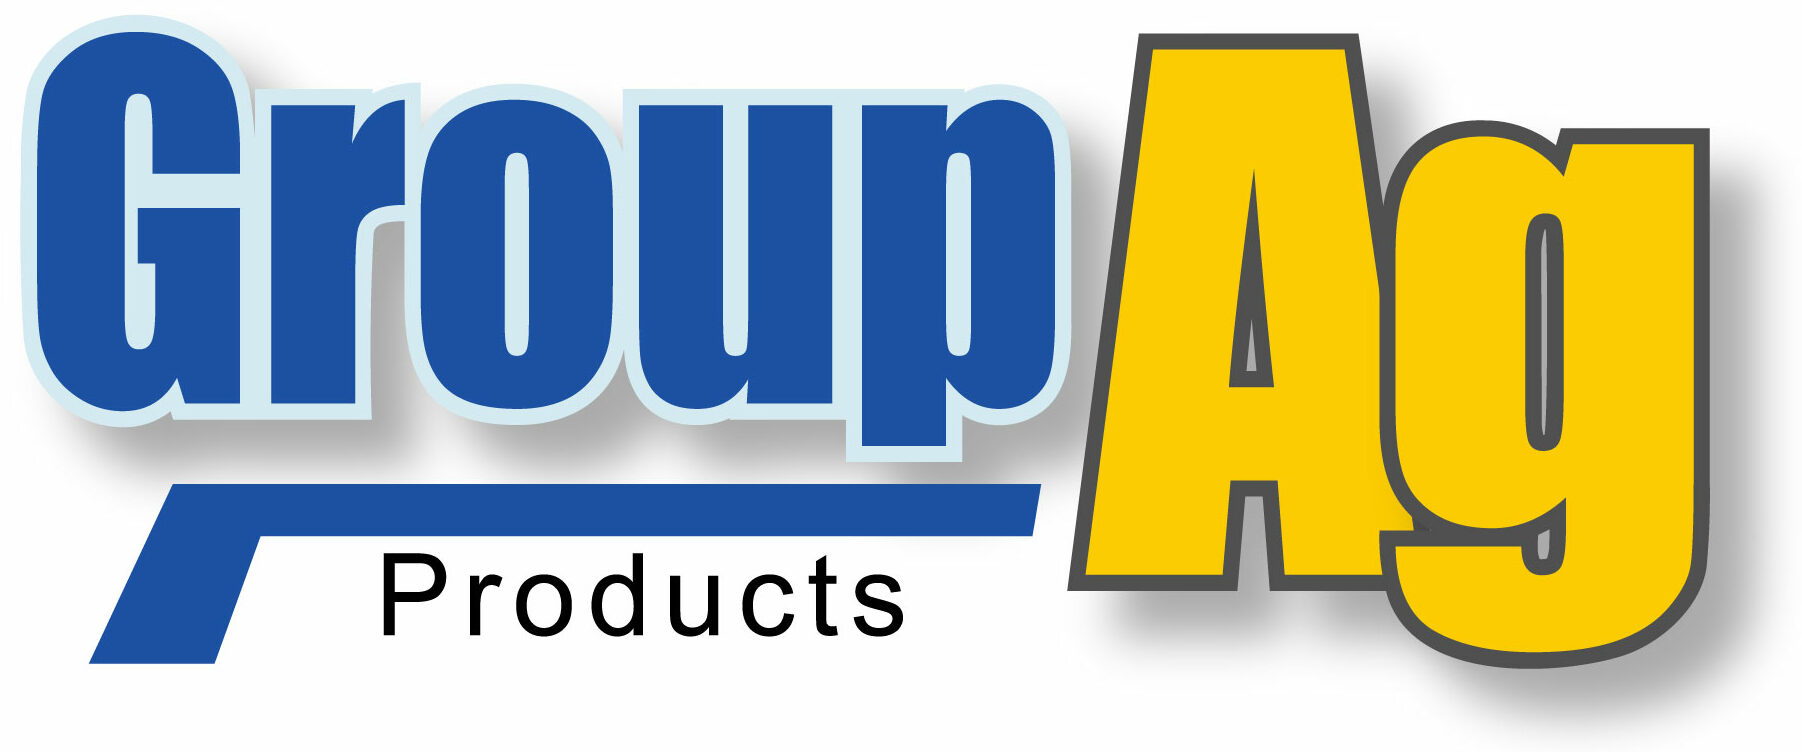 GroupAg Products